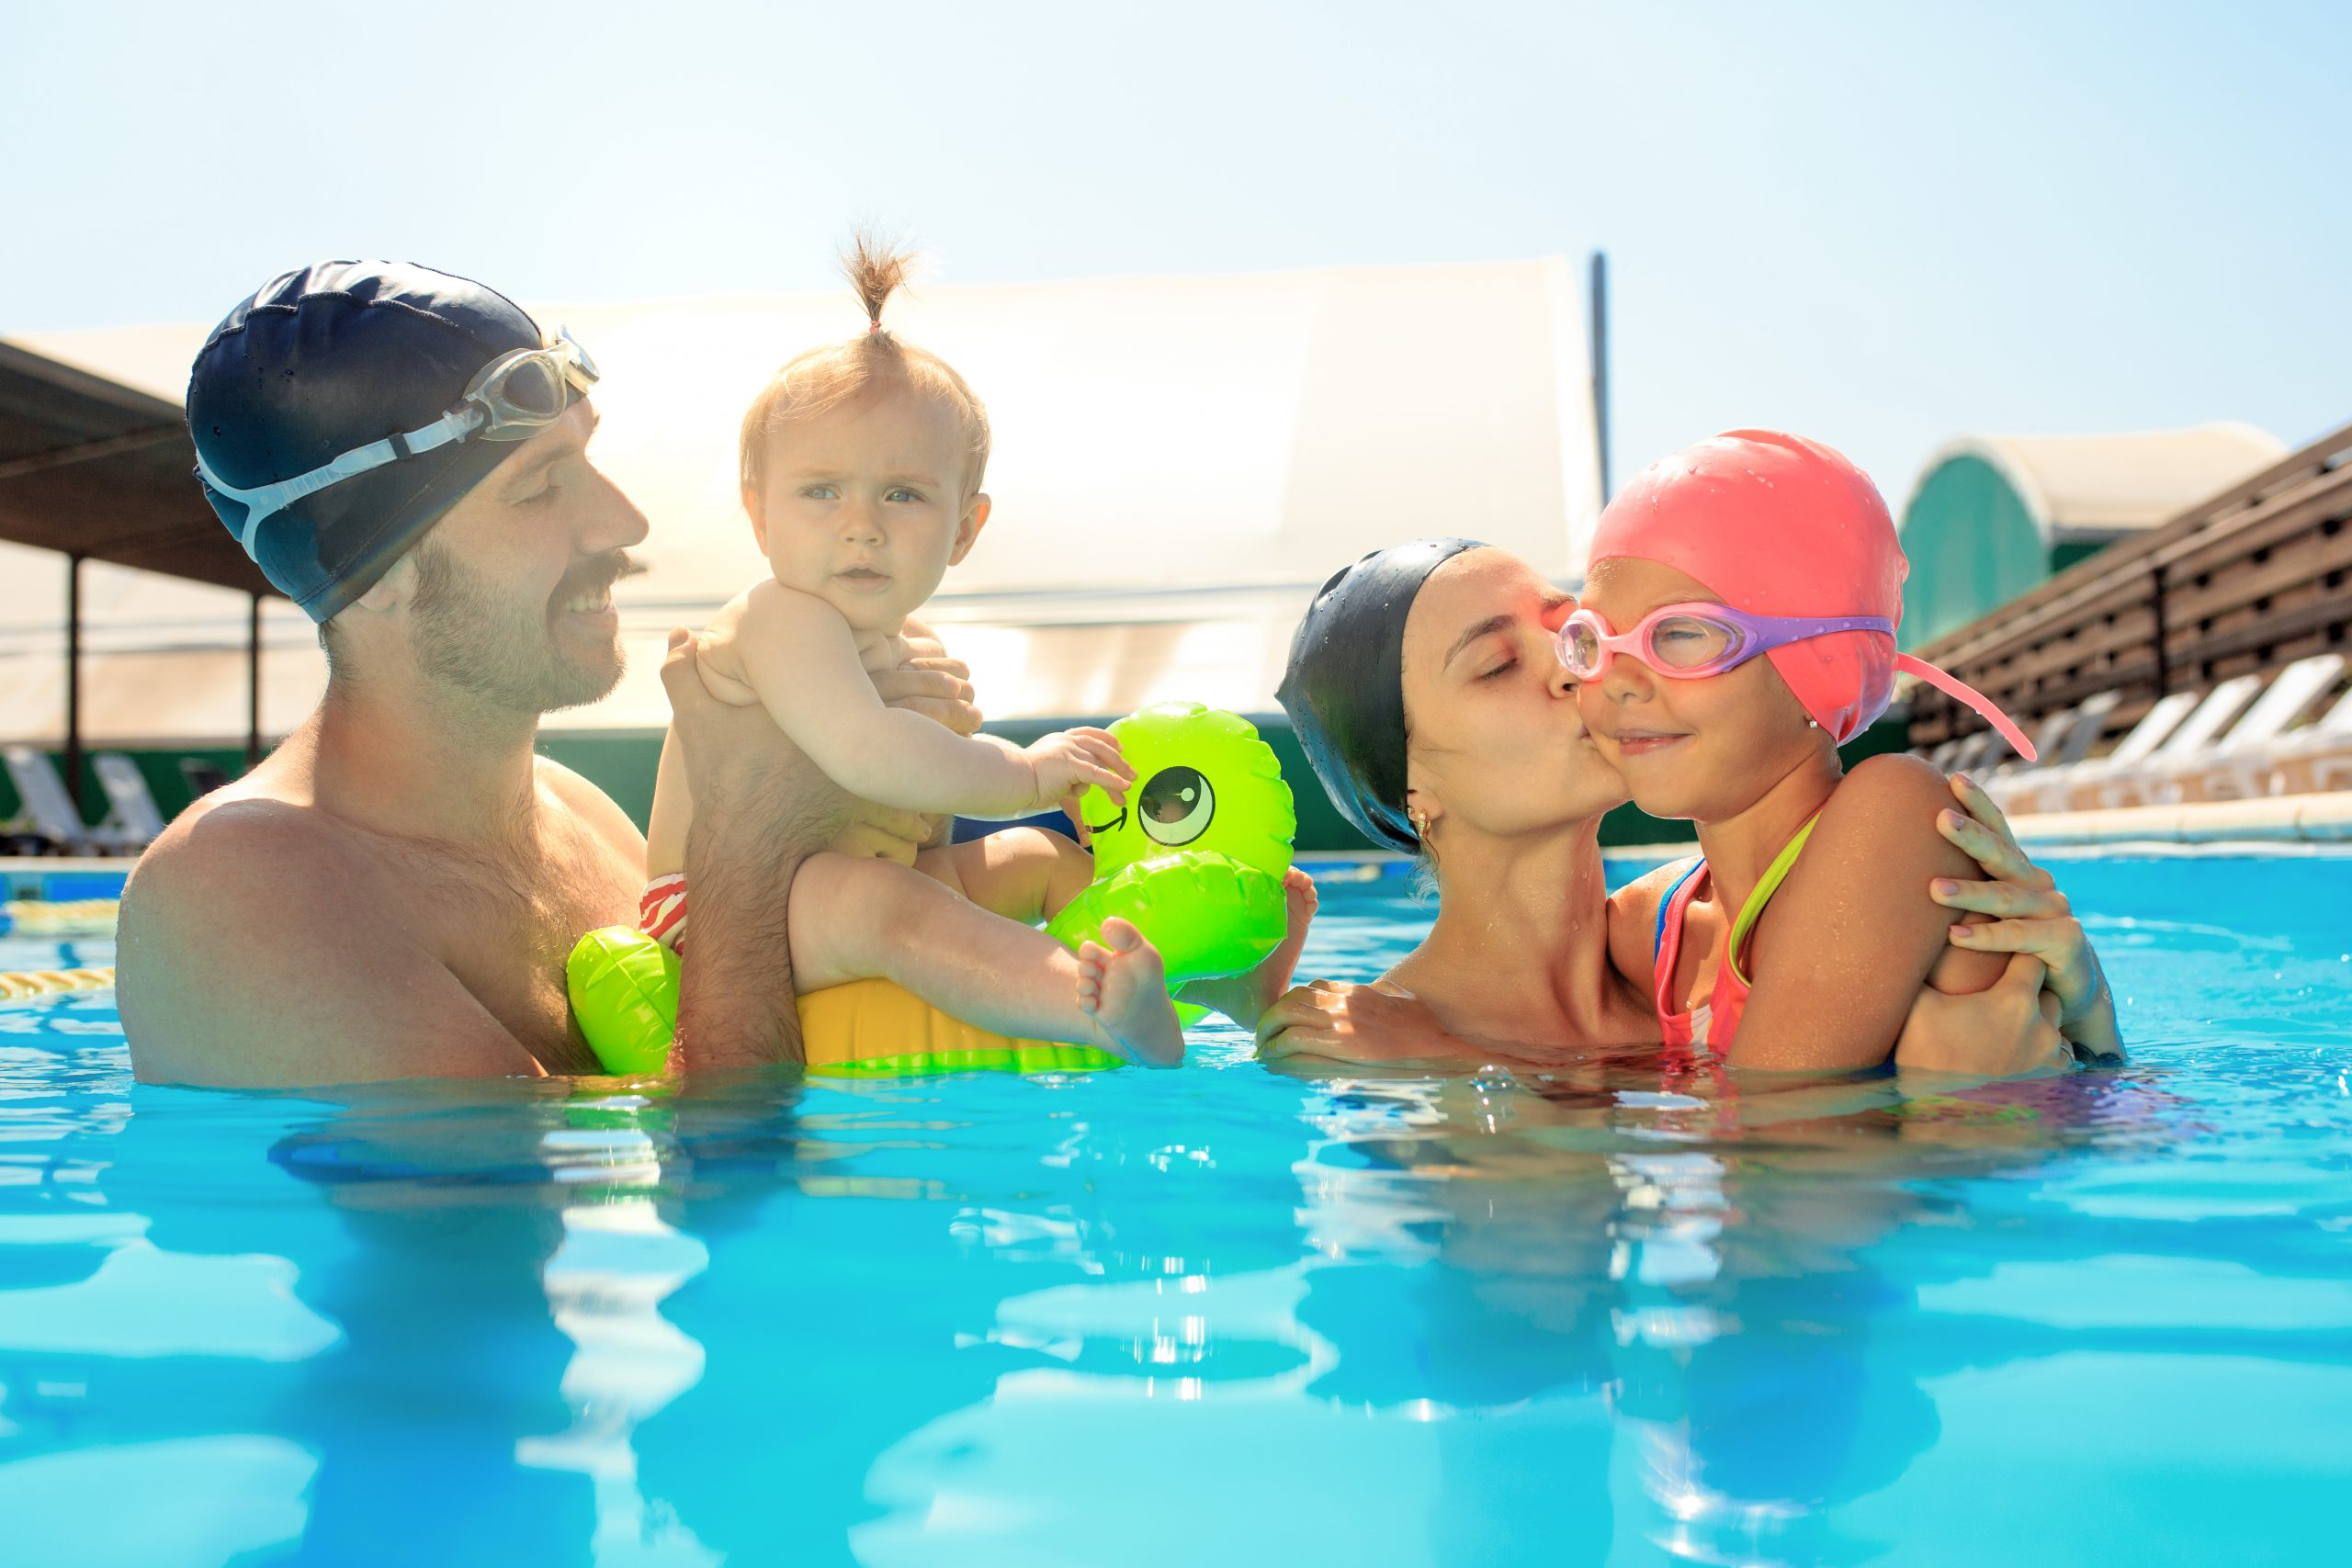 Happy family having fun by the swimming pool. Pool, leisure, swimming, summer, recreation, healthy lifstyle concept